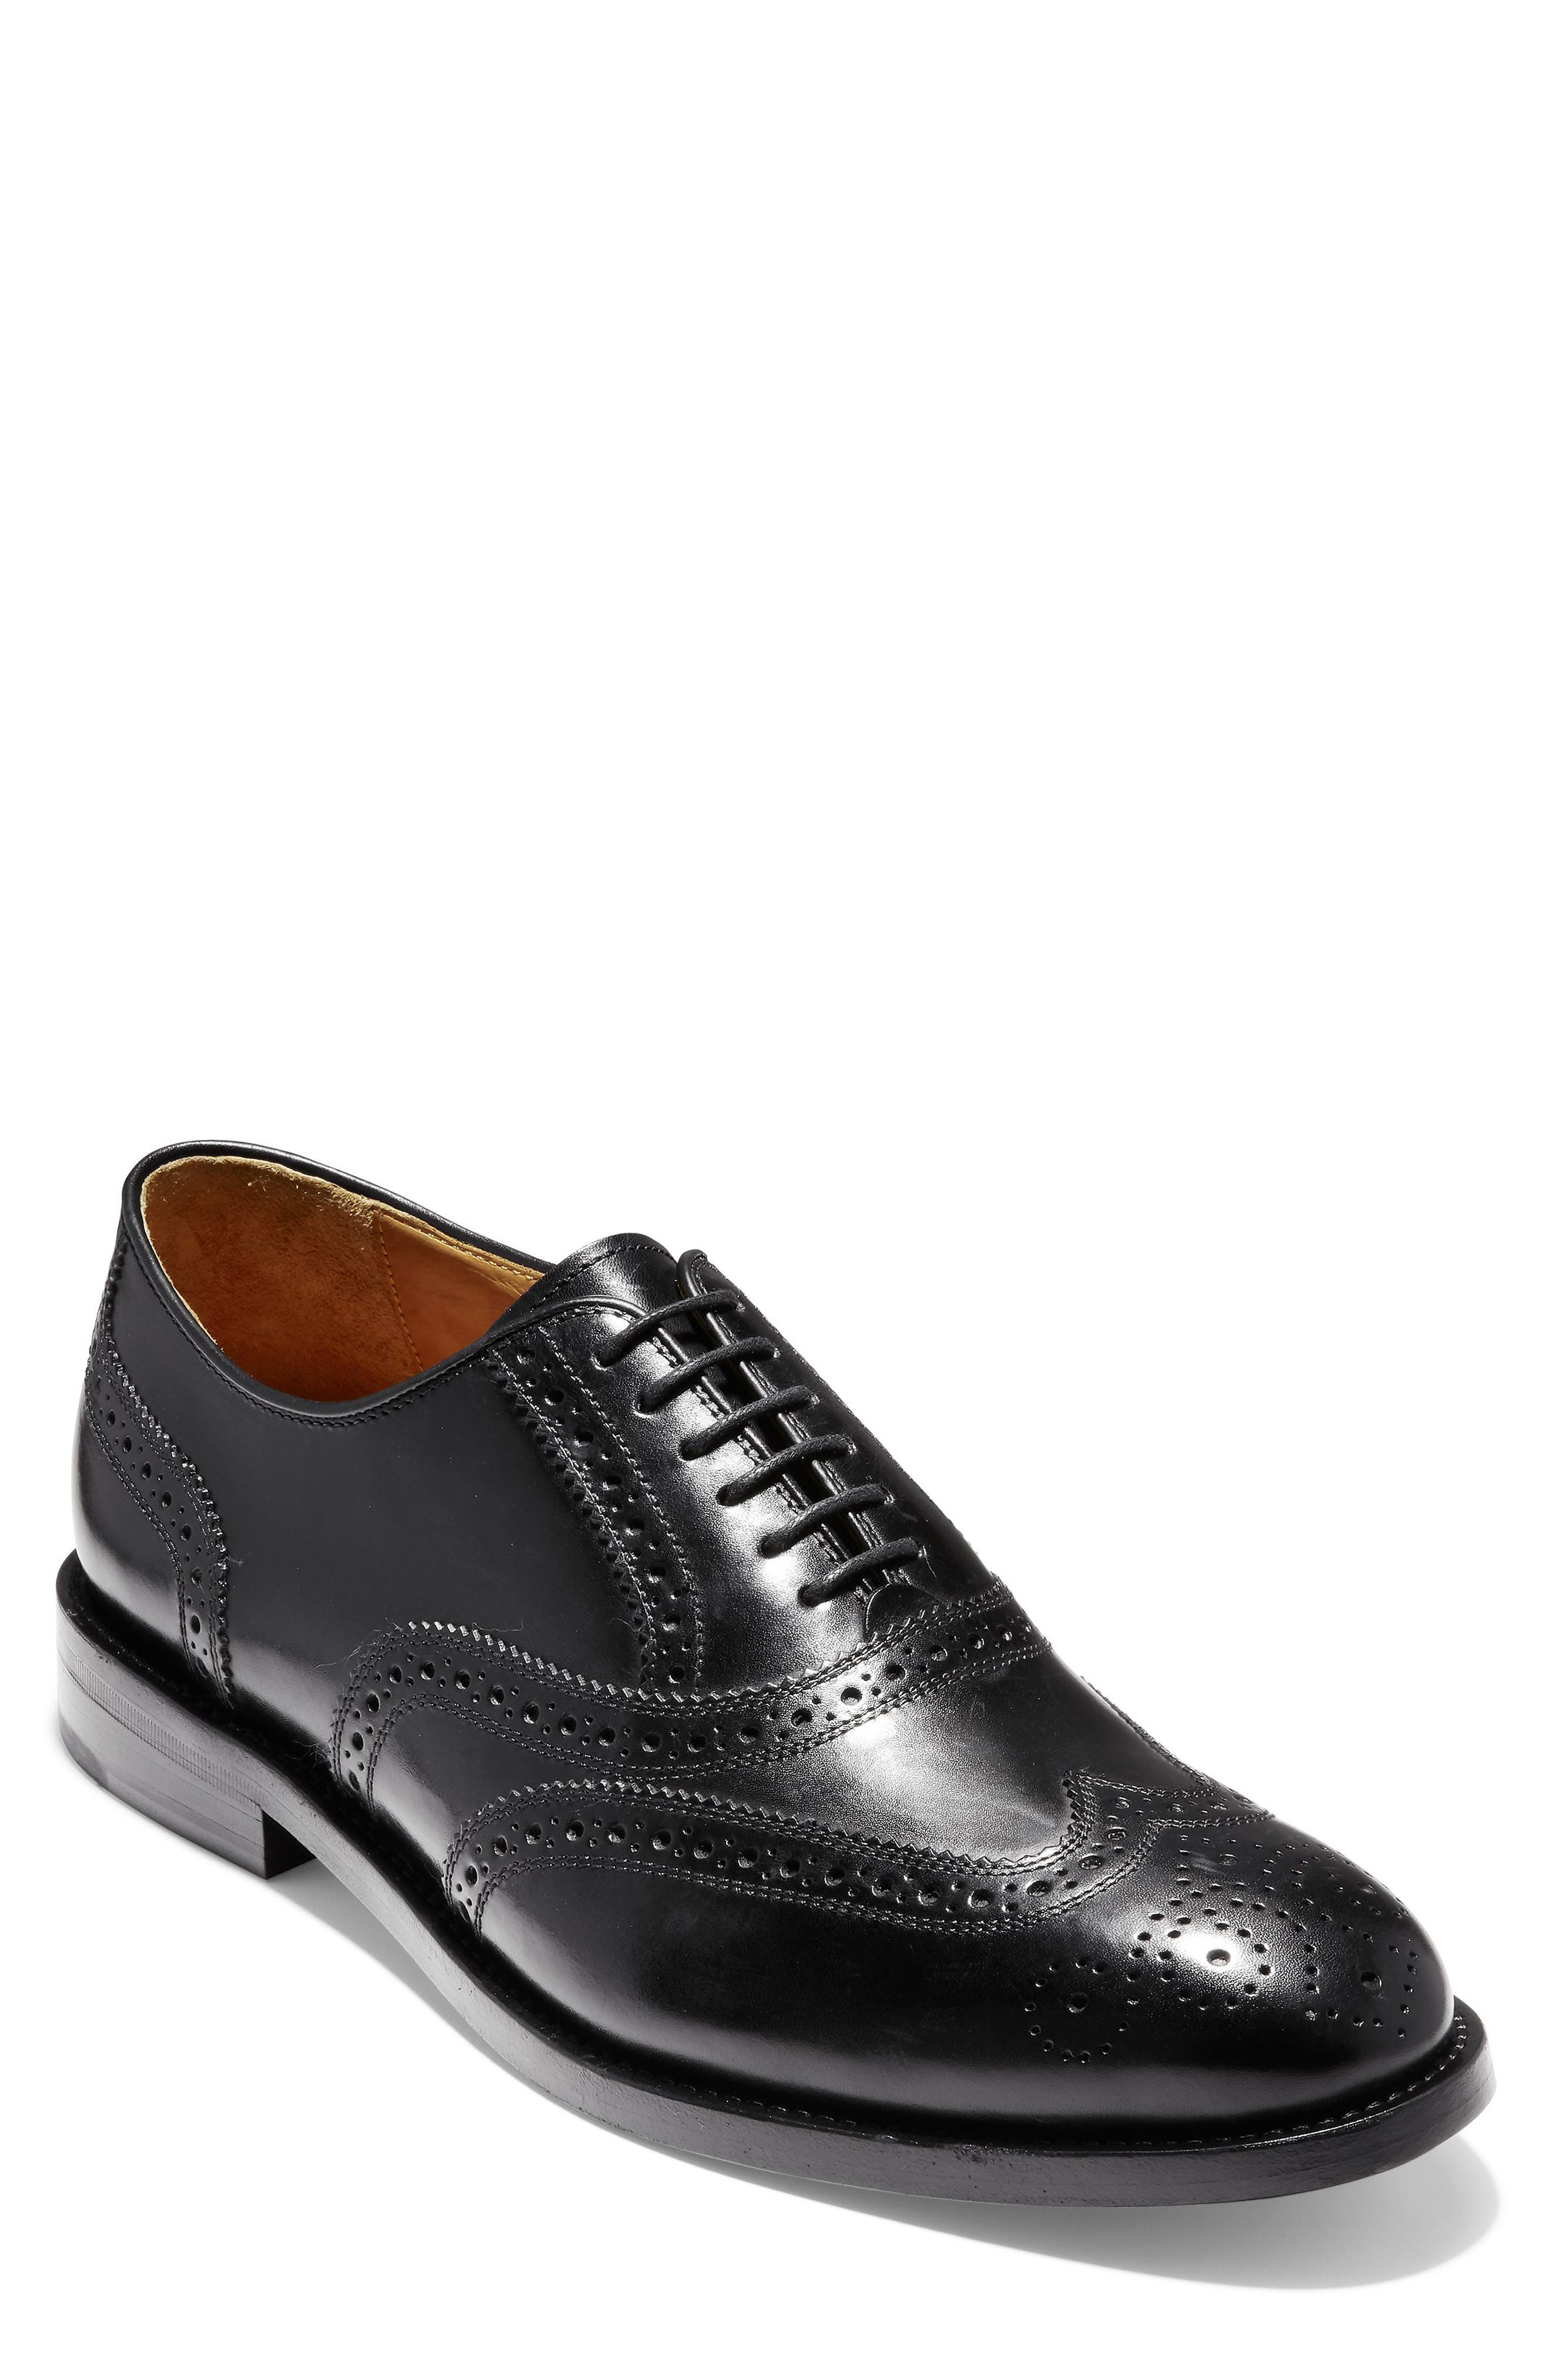 American Classics Kneeland Wingtip,                         Main,                         color, BLACK LEATHER